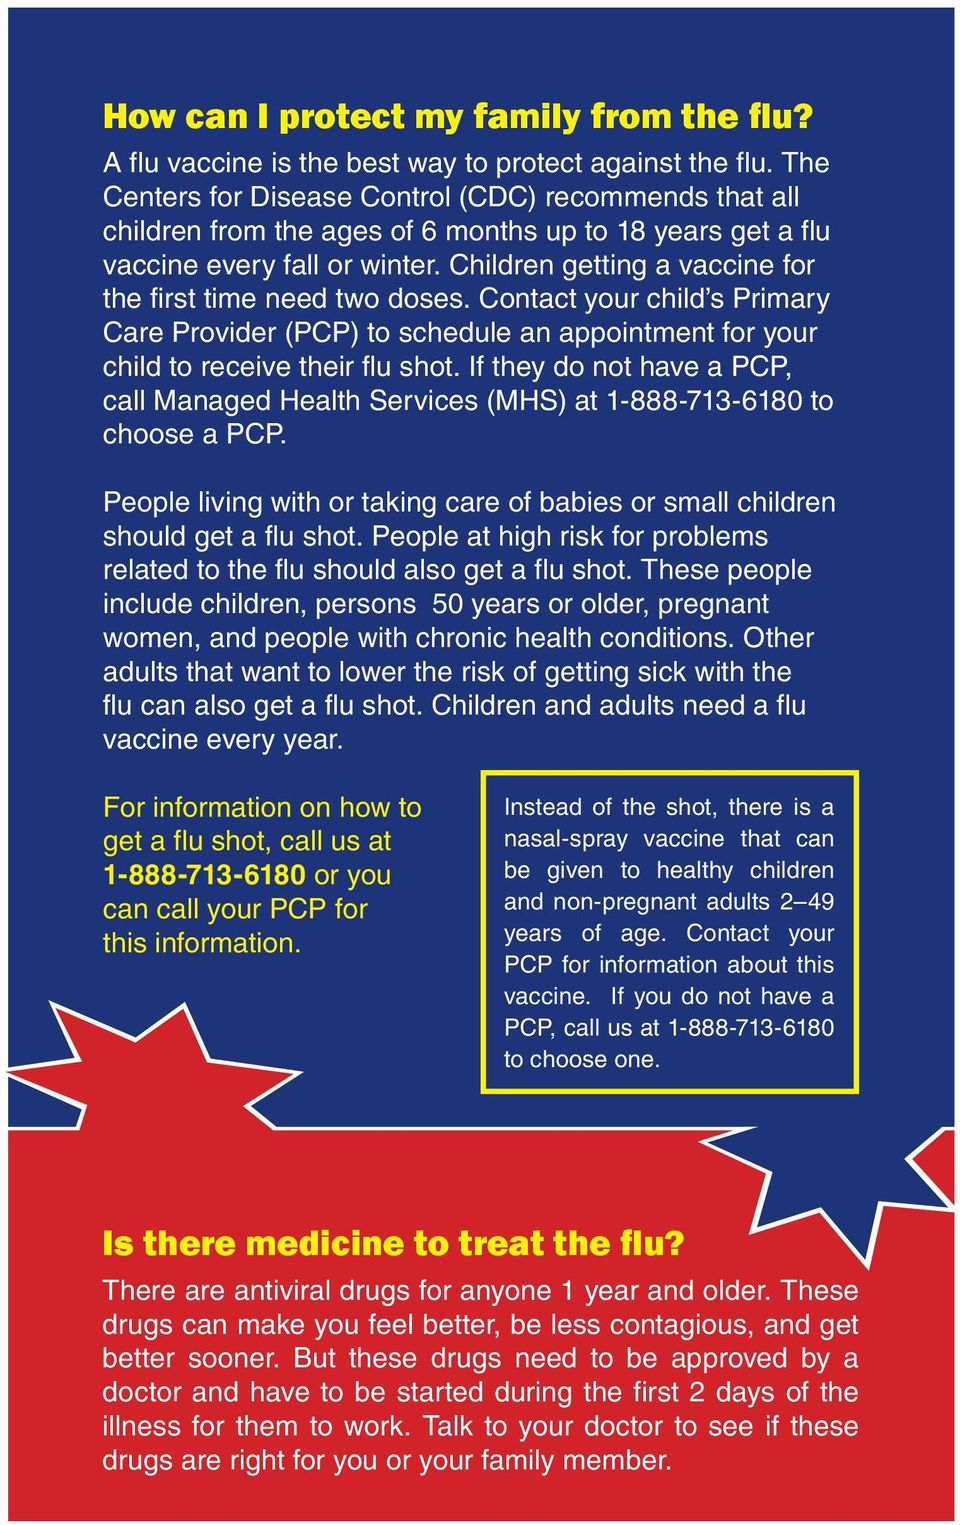 Children getting a vaccine for the first time need two doses. Contact your child s Primary Care Provider (PCP) to schedule an appointment for your child to receive their flu shot.